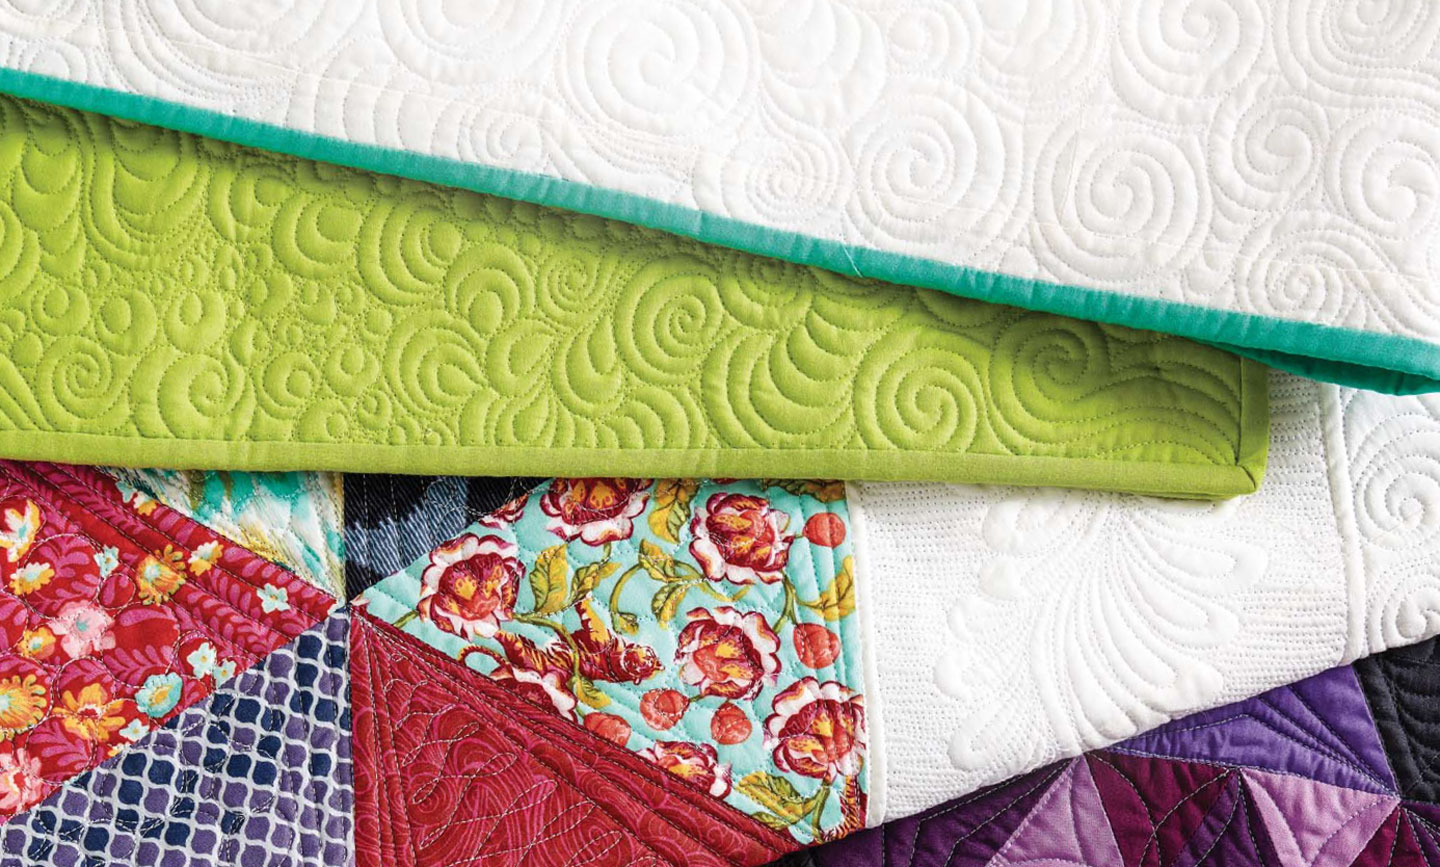 Long Arm Quilting - The Longarm Quilting Workbook